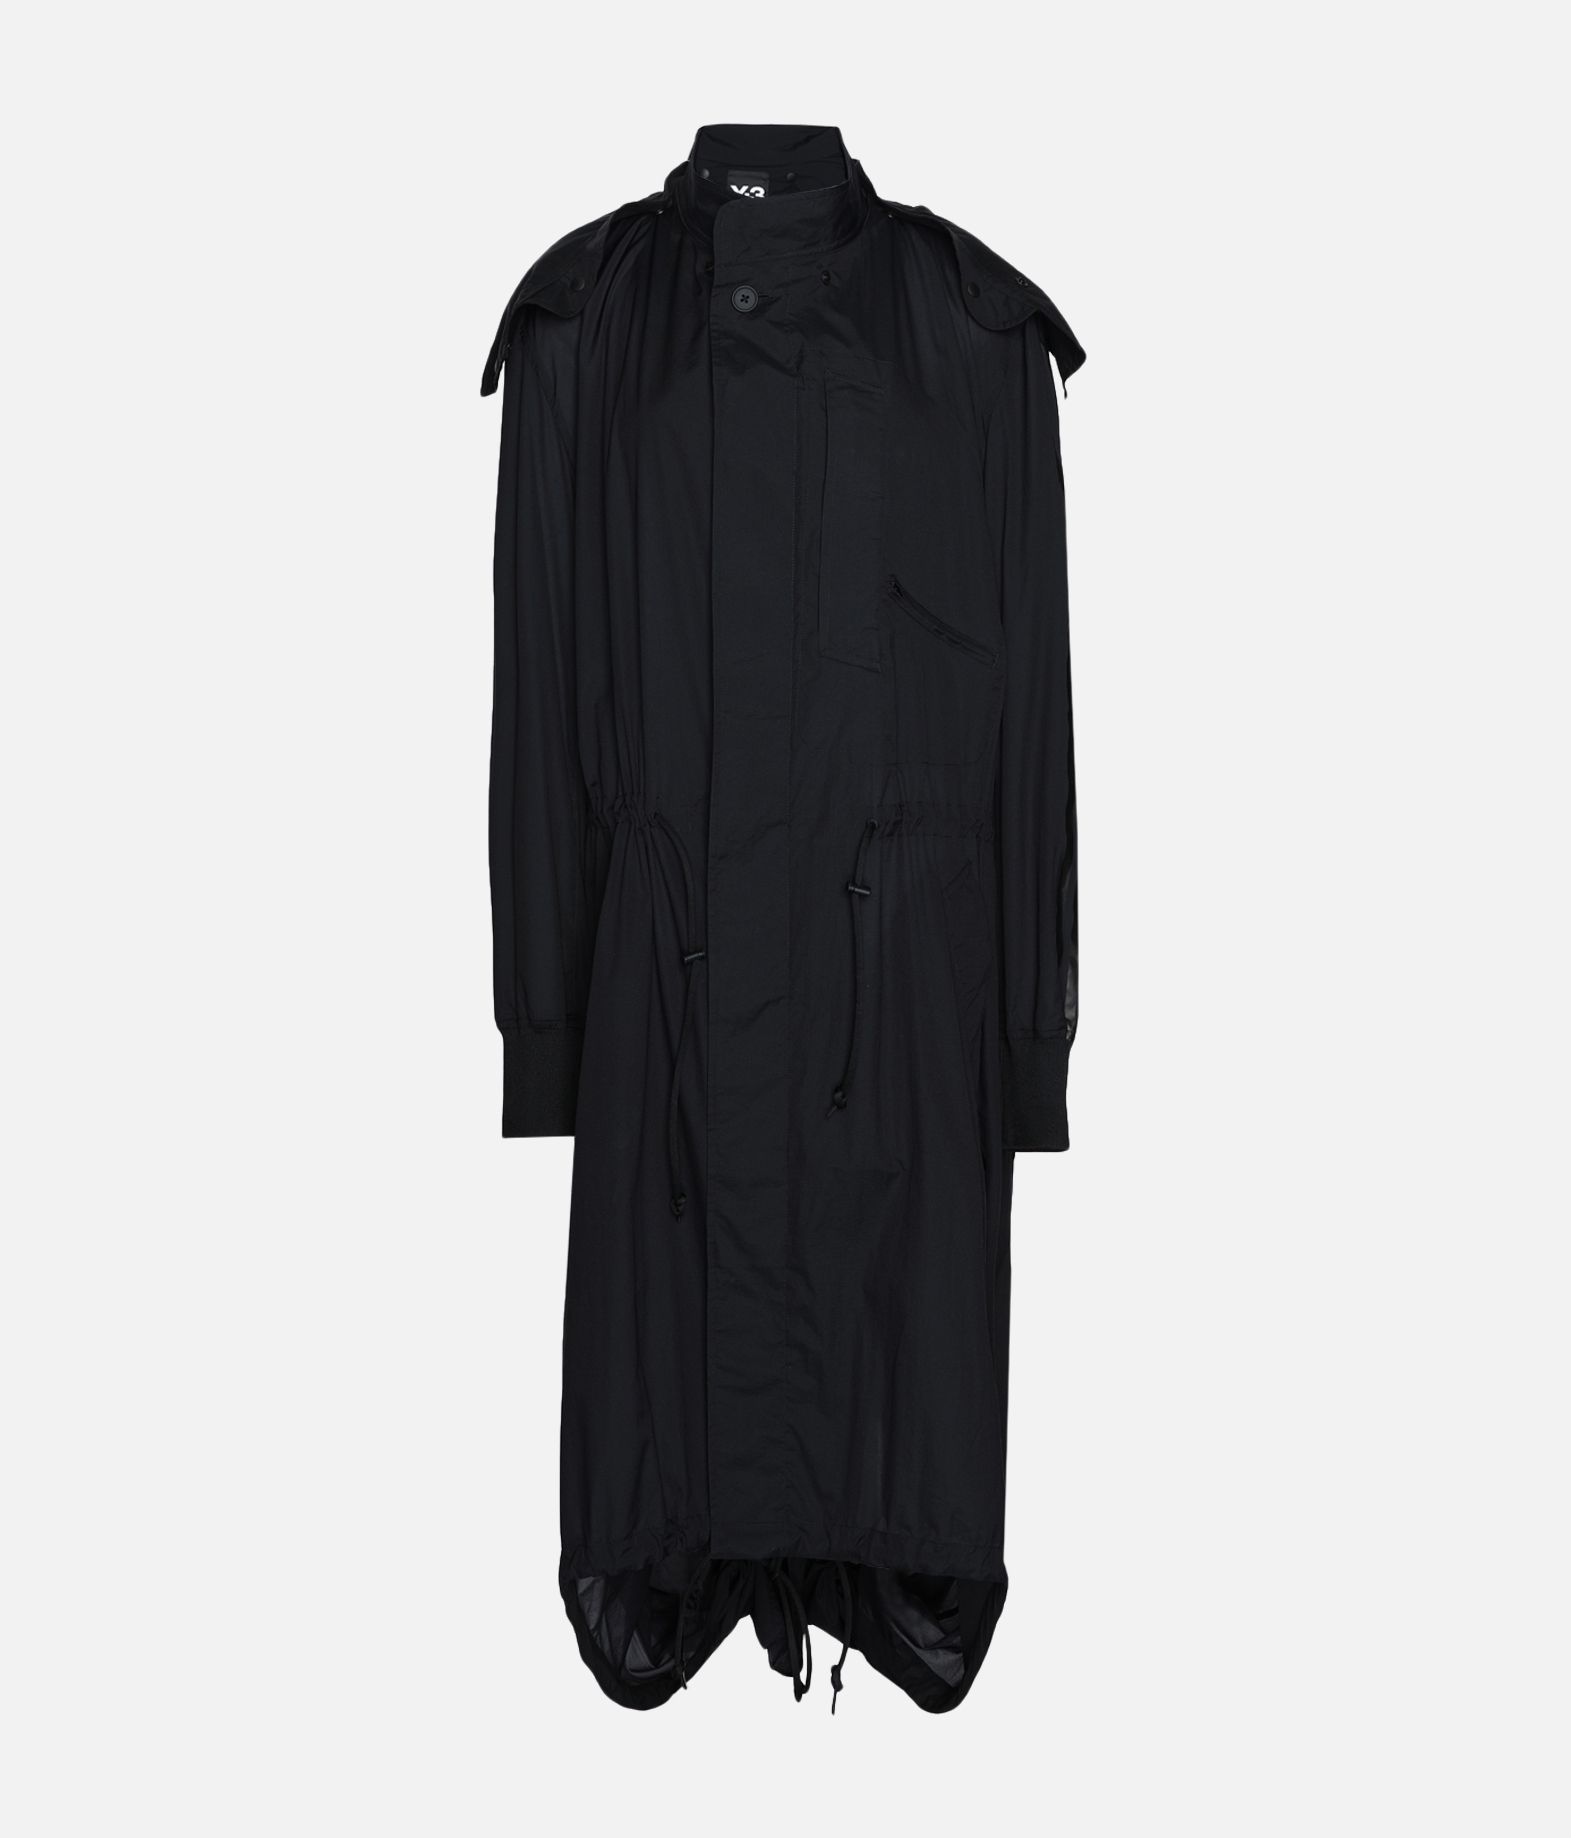 Y-3 Y-3 Adizero Fishtail Parka Nylon parka Woman f